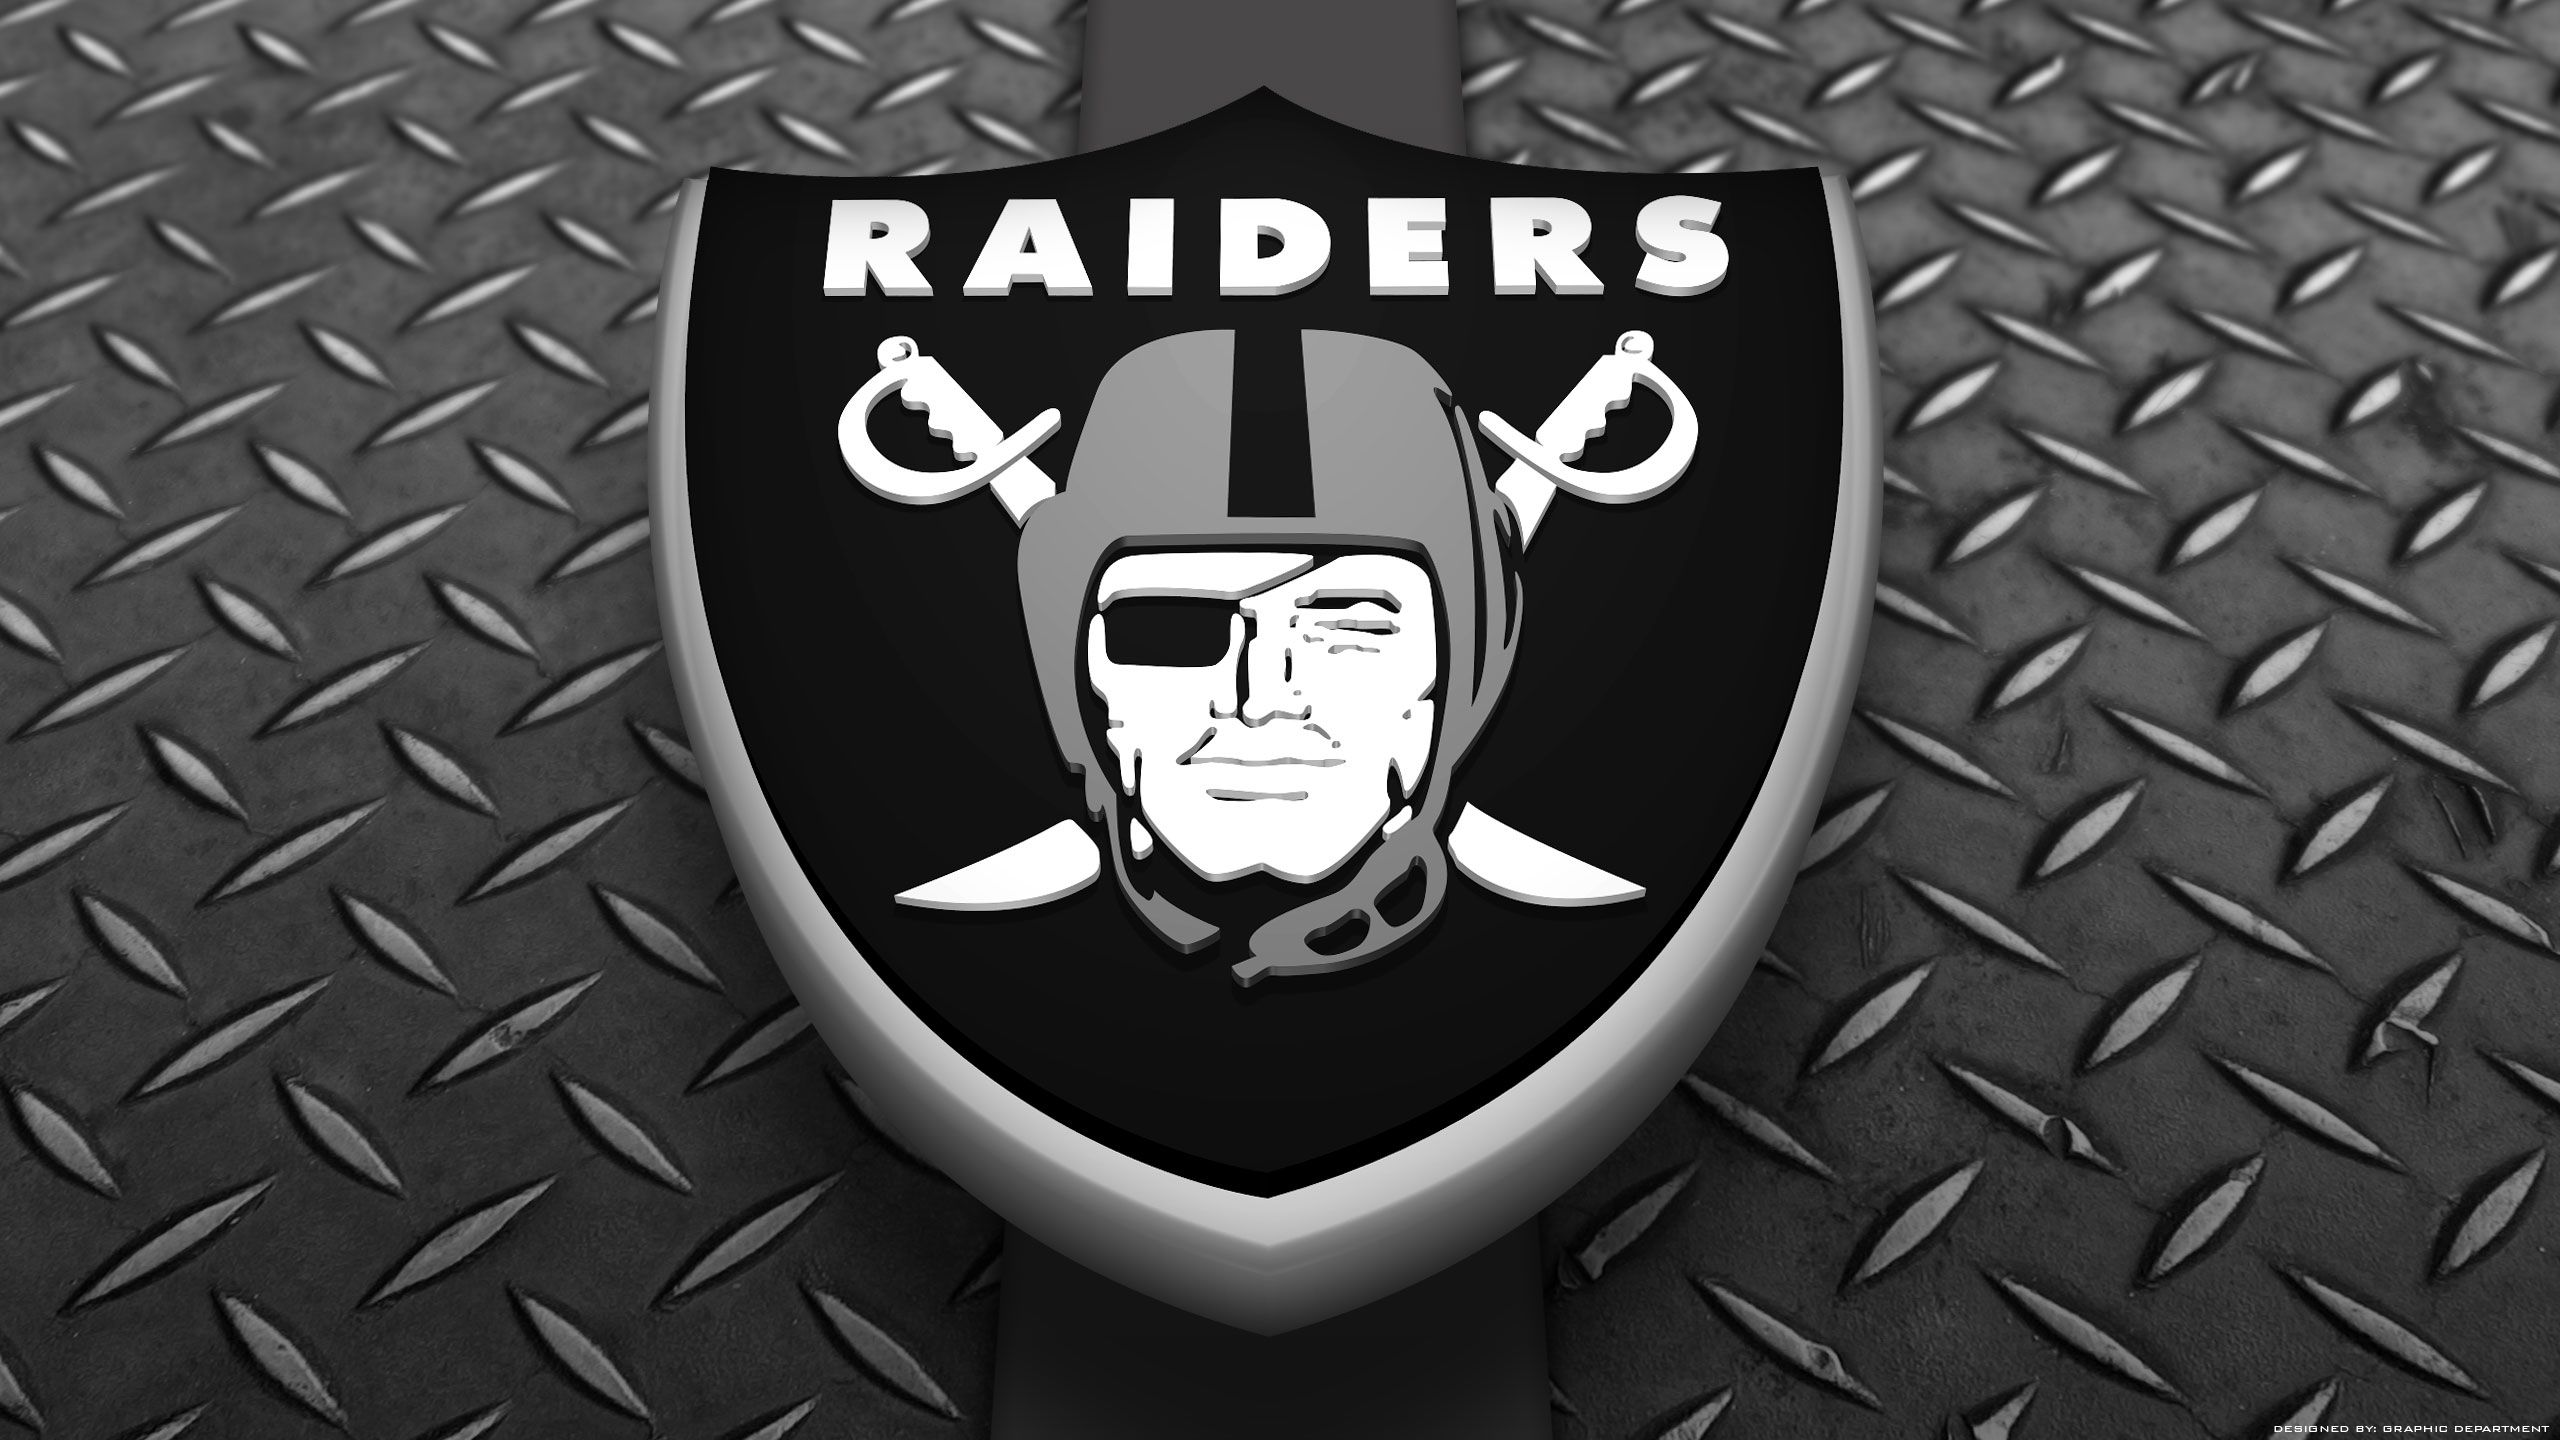 Raiders screensaver impremedia wallpapers raiders 32 wallpapers voltagebd Choice Image